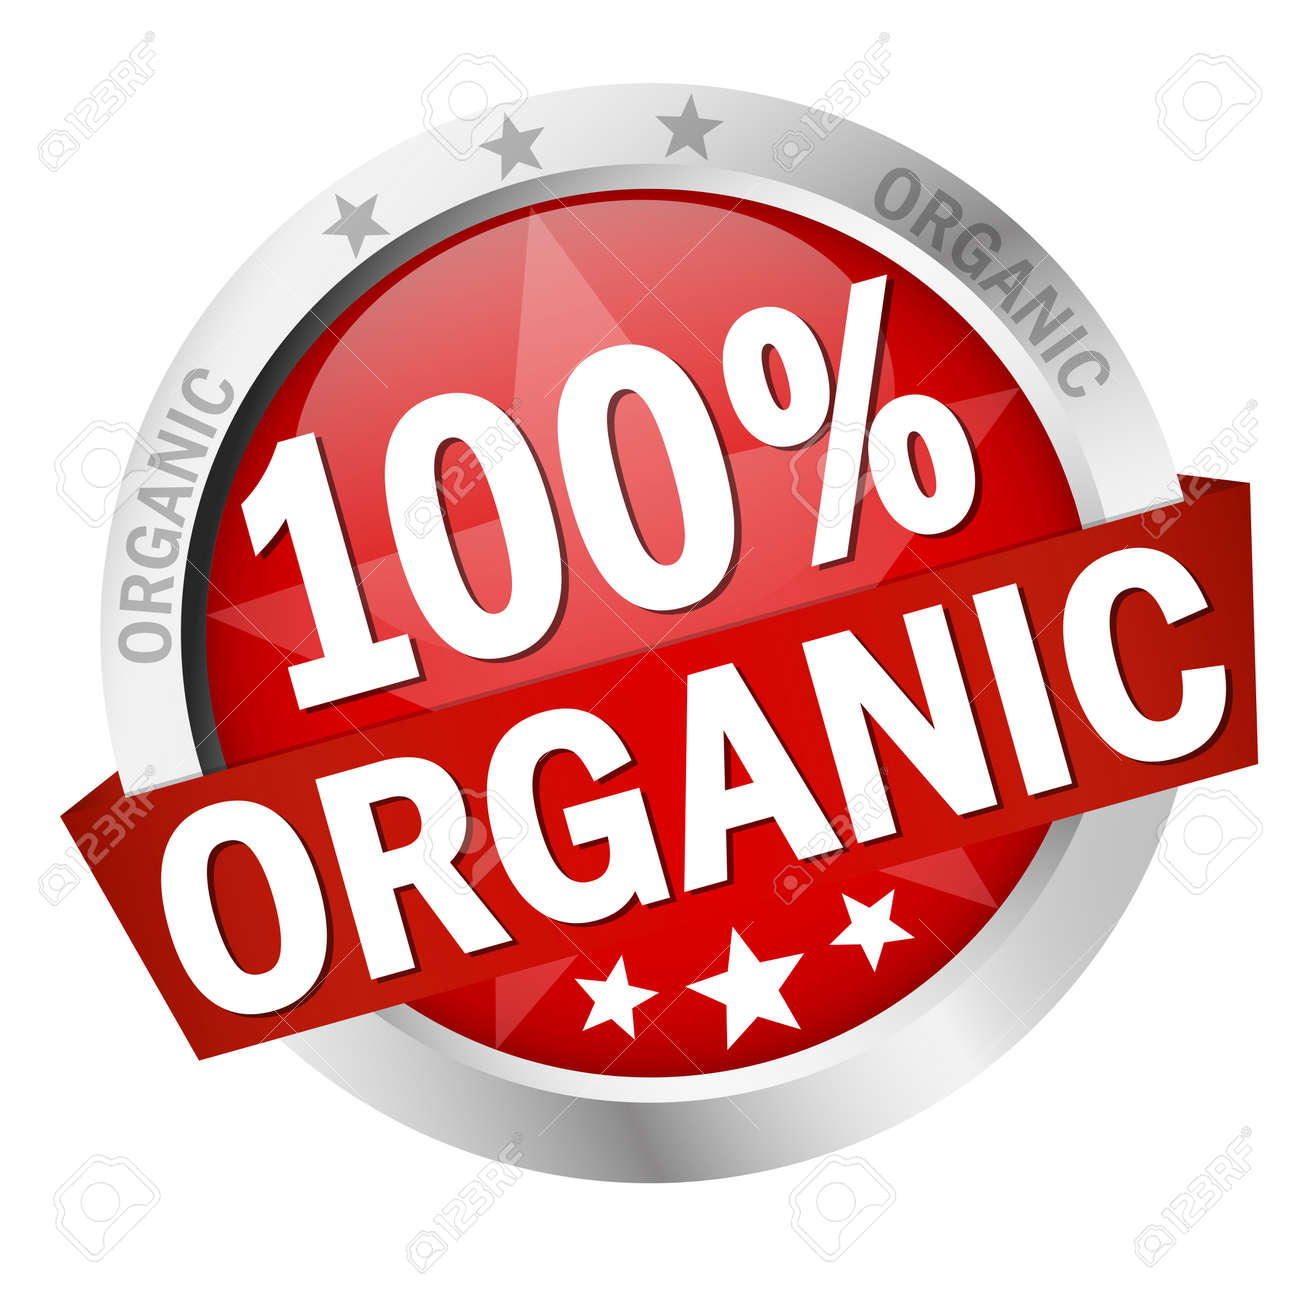 round colored button with banner and text 100% organic - 159182406